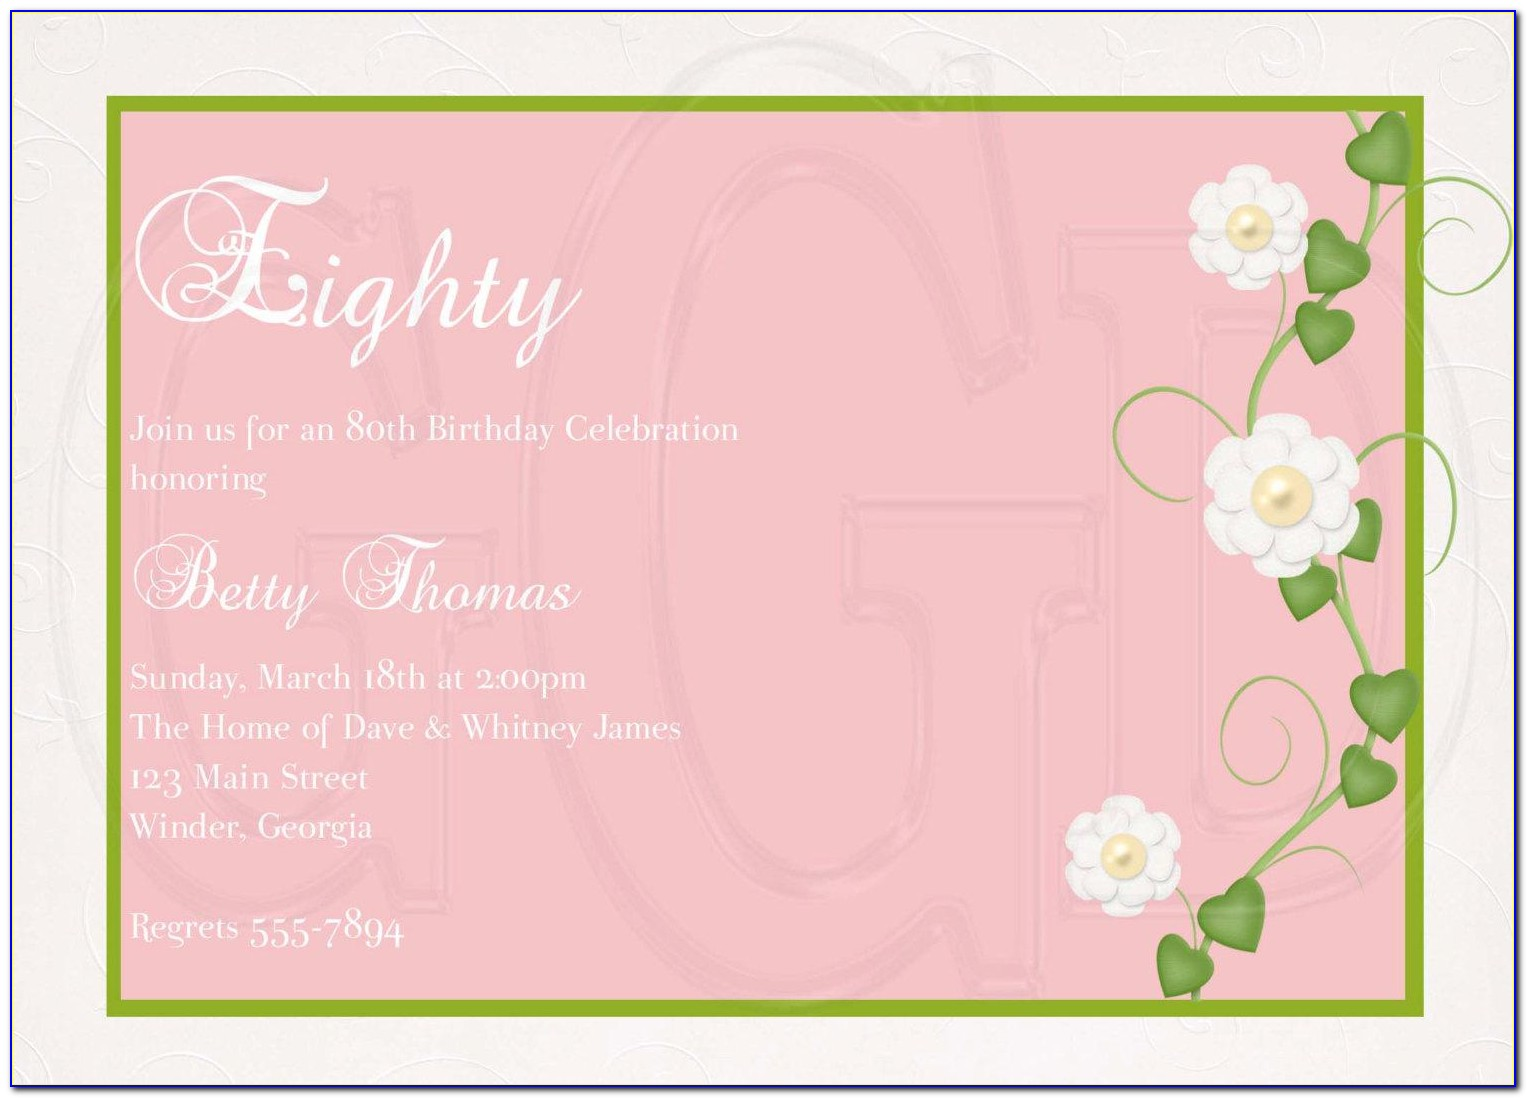 Happy 80th Birthday Invitation Templates